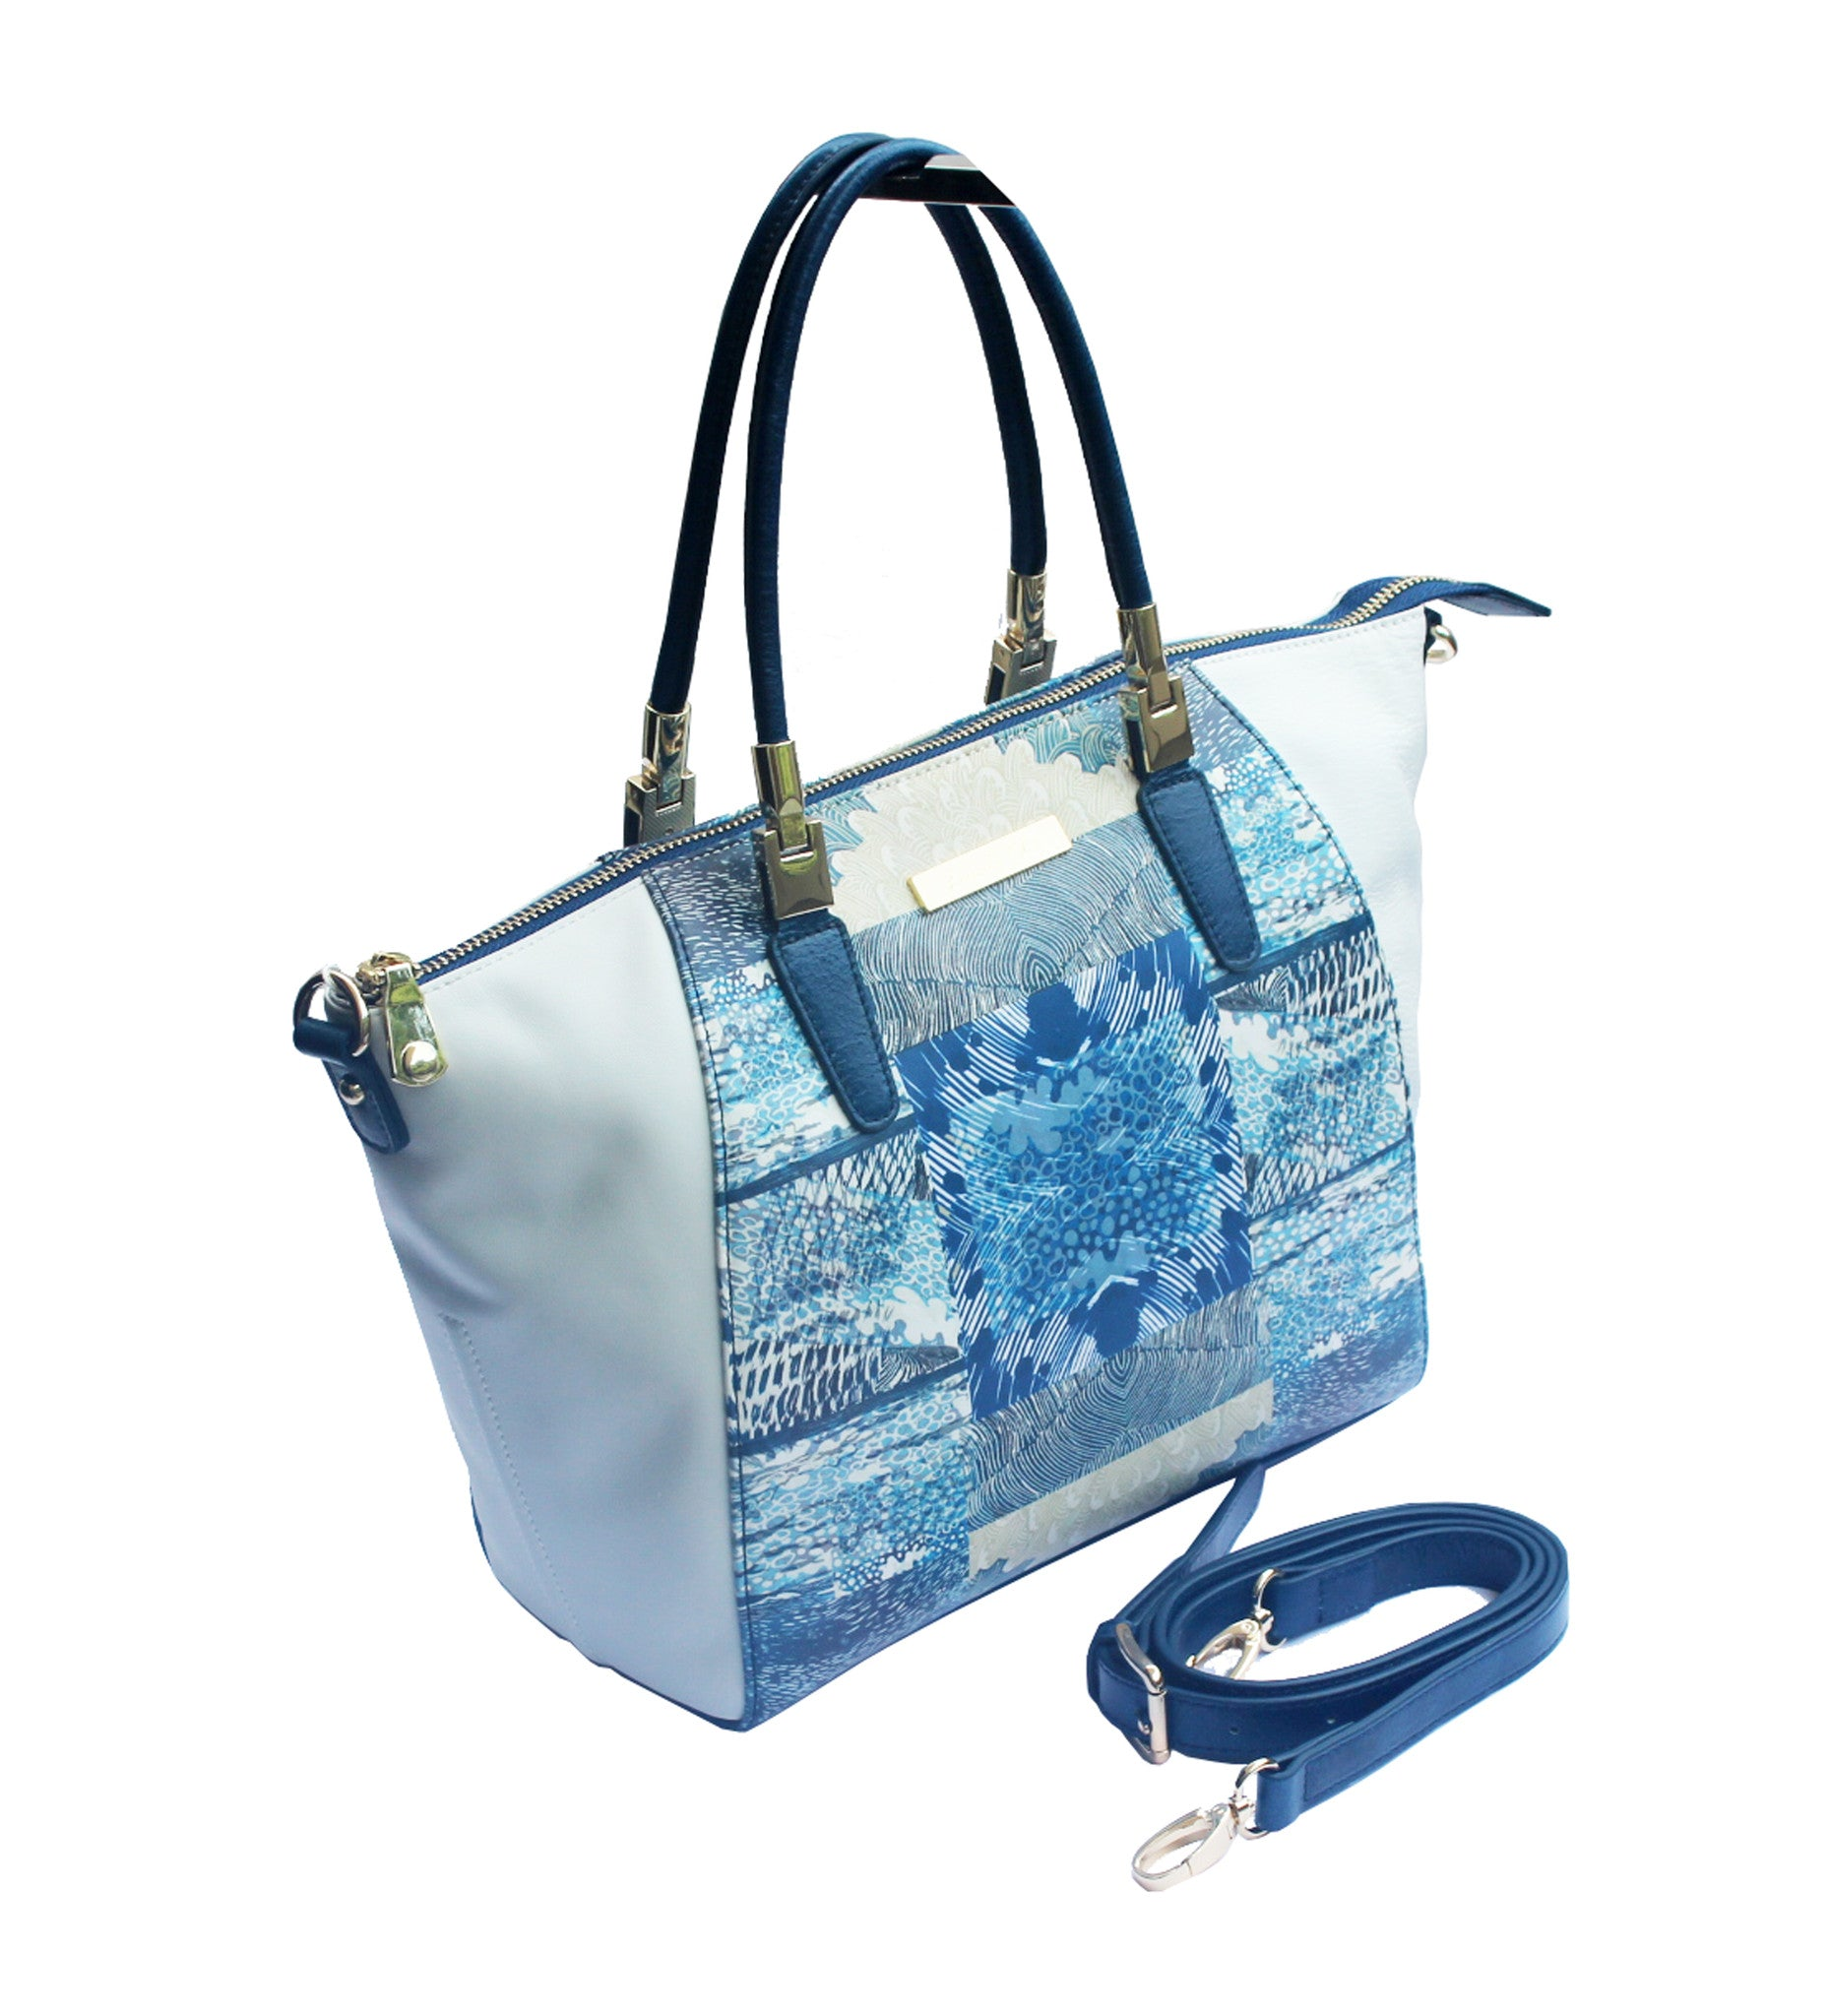 White and Blue Leather Handbag Louella Odie